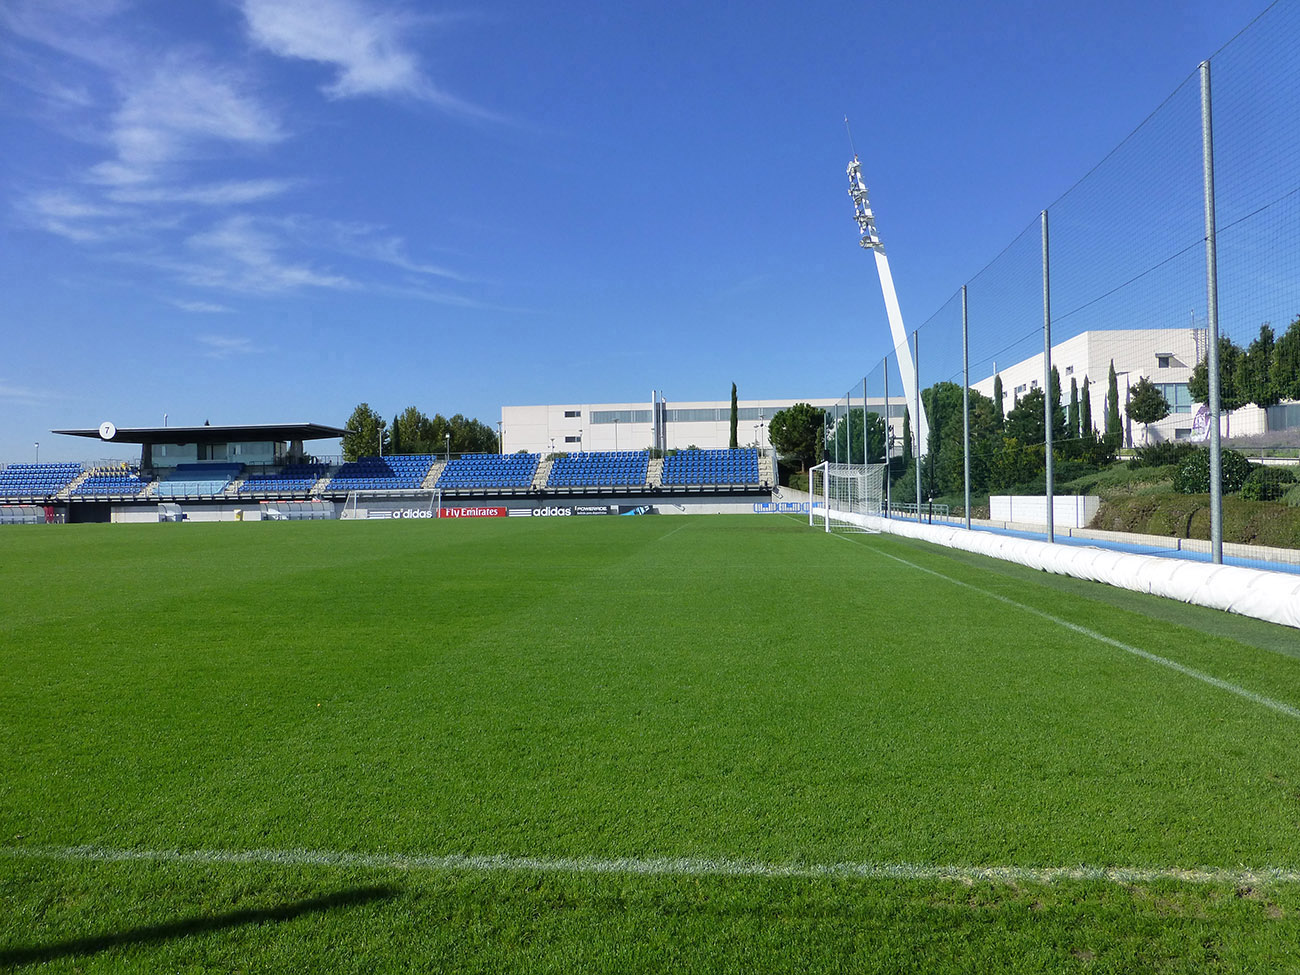 REAL MADRID TRAINING GROUND - MATCHSAVER